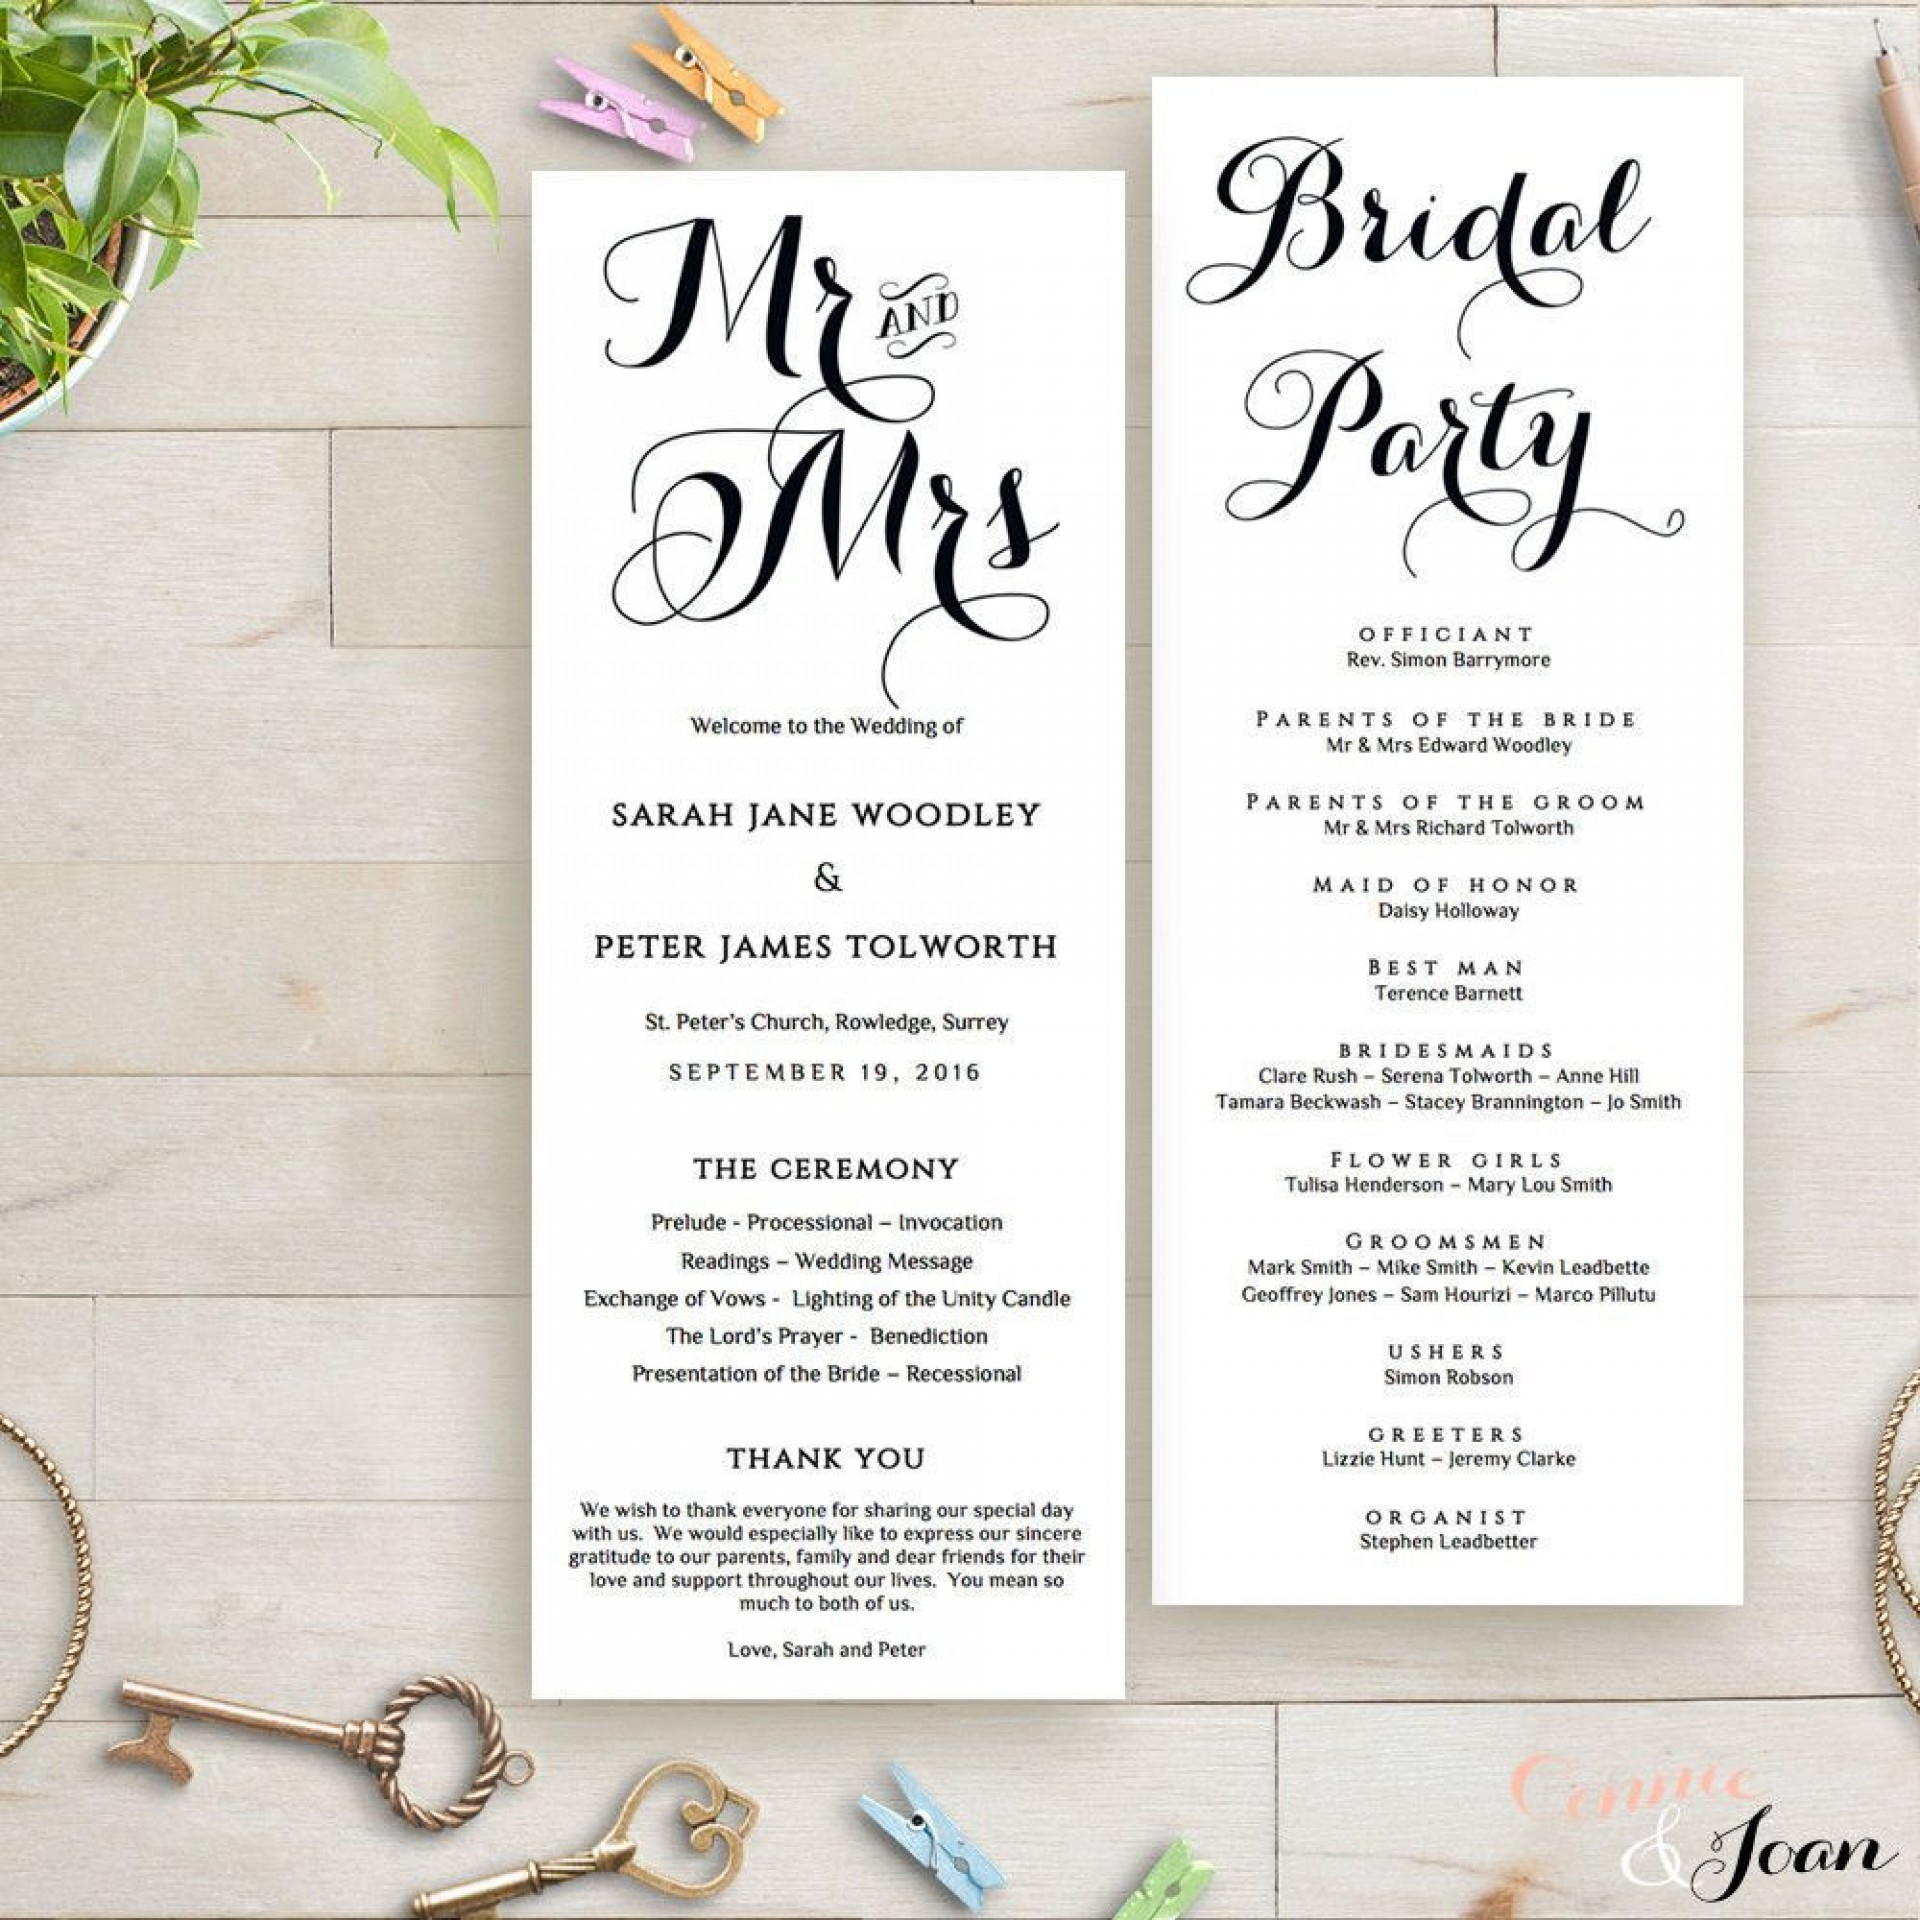 002 Marvelou Wedding Order Of Service Template Photo  Pdf Publisher Microsoft Word1920